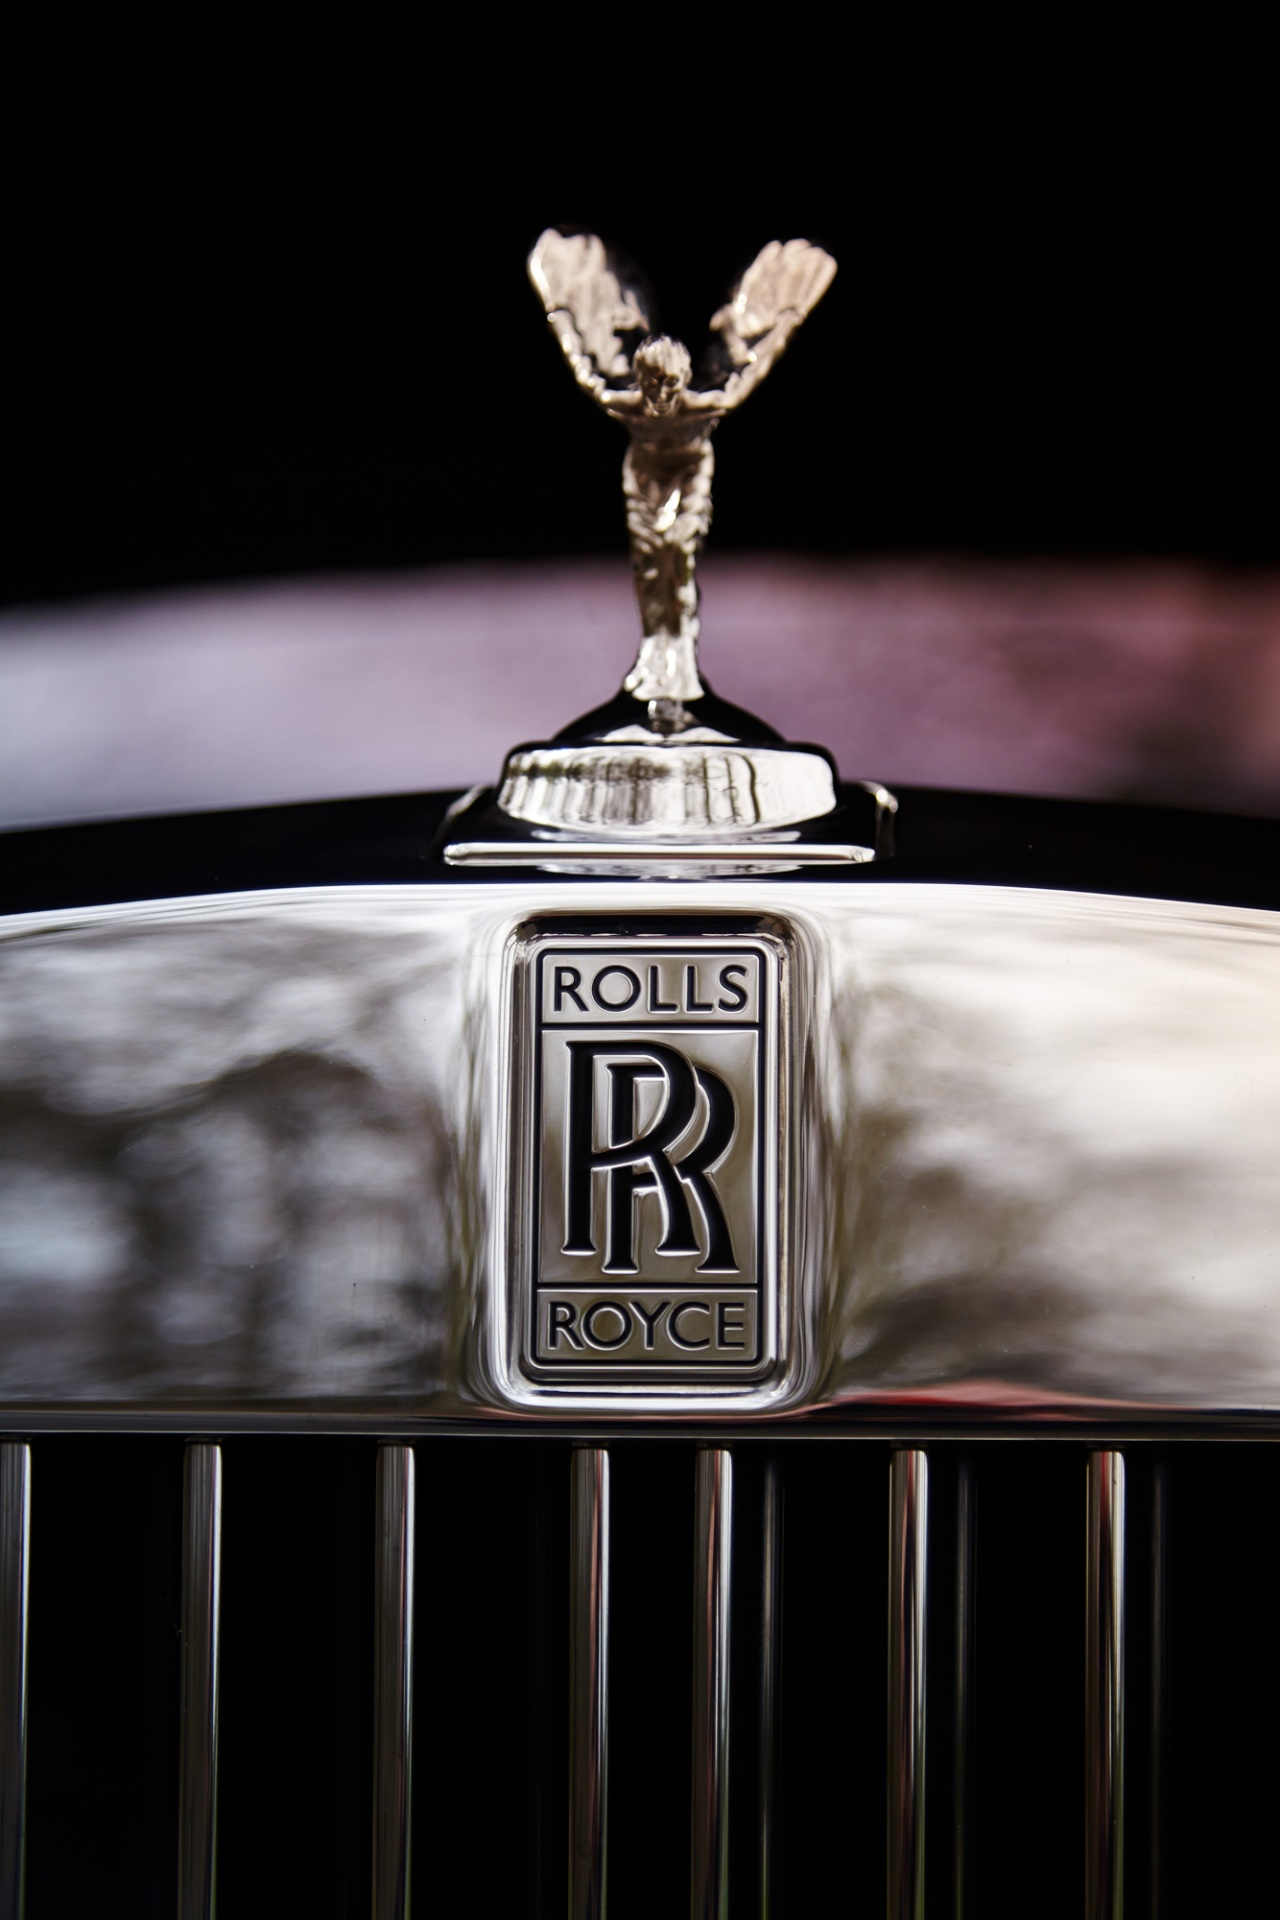 rolls royce l excellence d une phantom. Black Bedroom Furniture Sets. Home Design Ideas